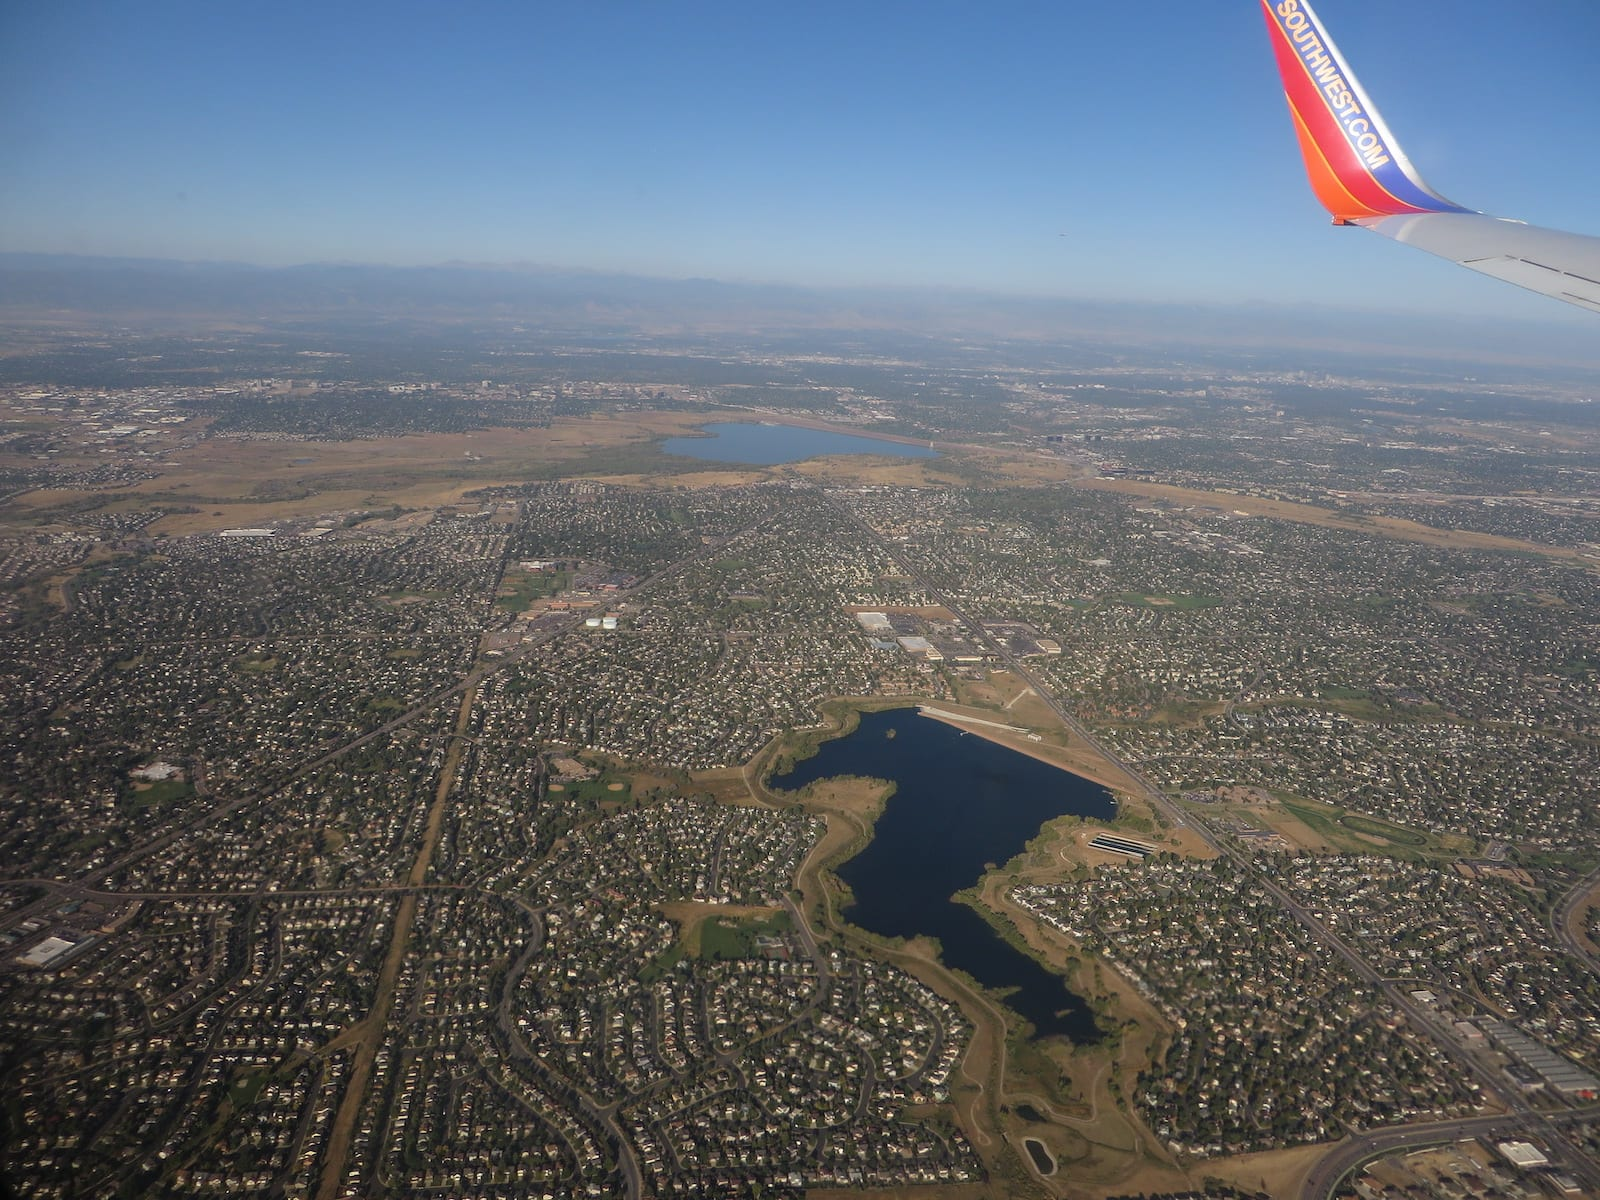 Cherry Creek Reservoir Aerial View from Airplane Denver Colorado